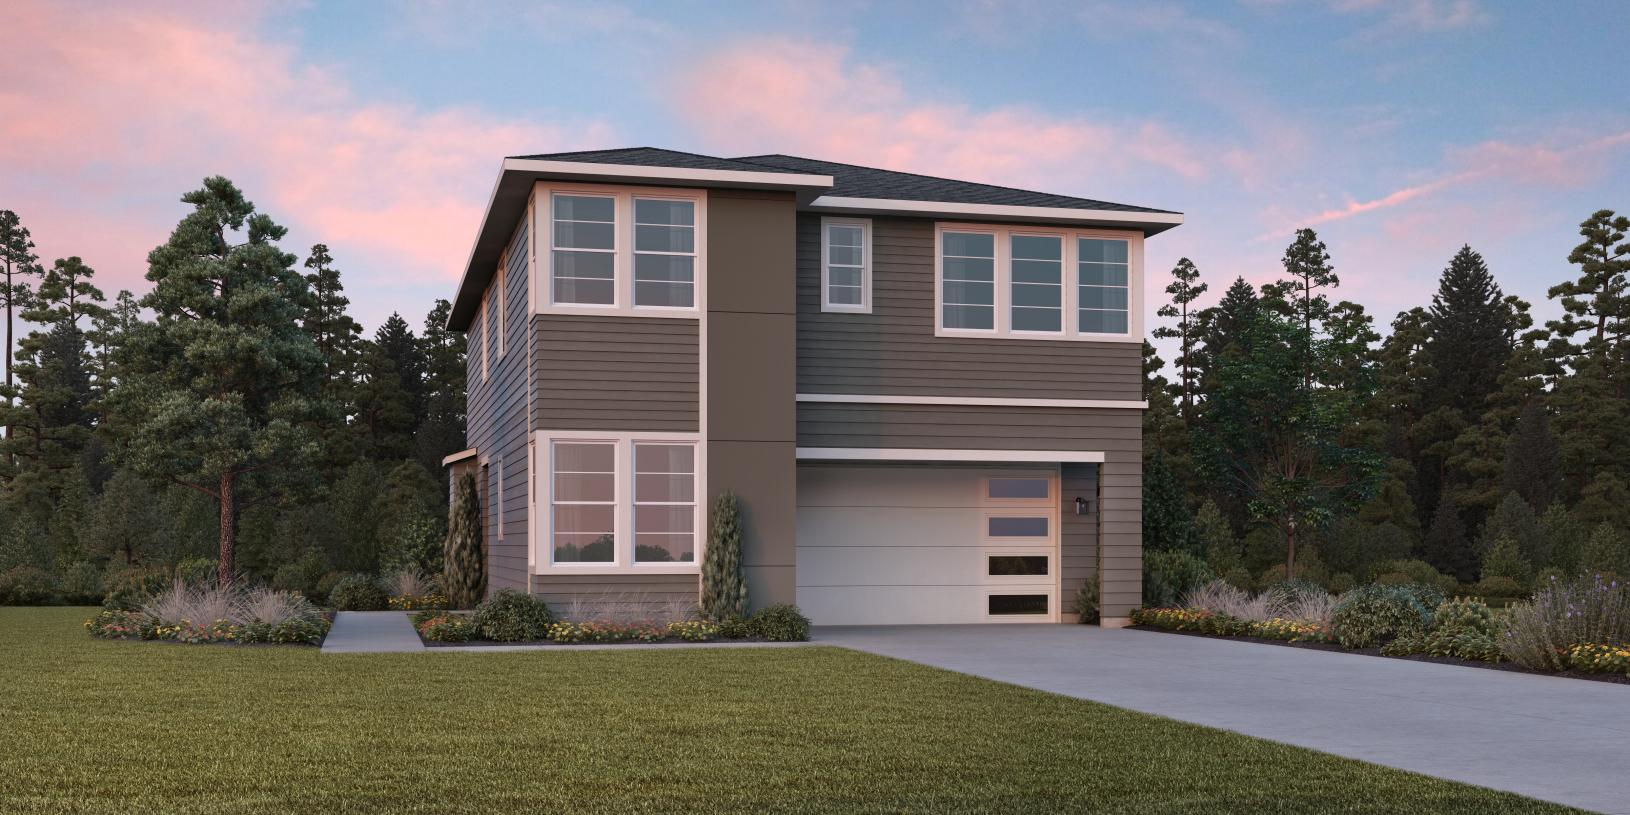 A variety of architectural styles including the modern Orchard will create a lovely streetscape